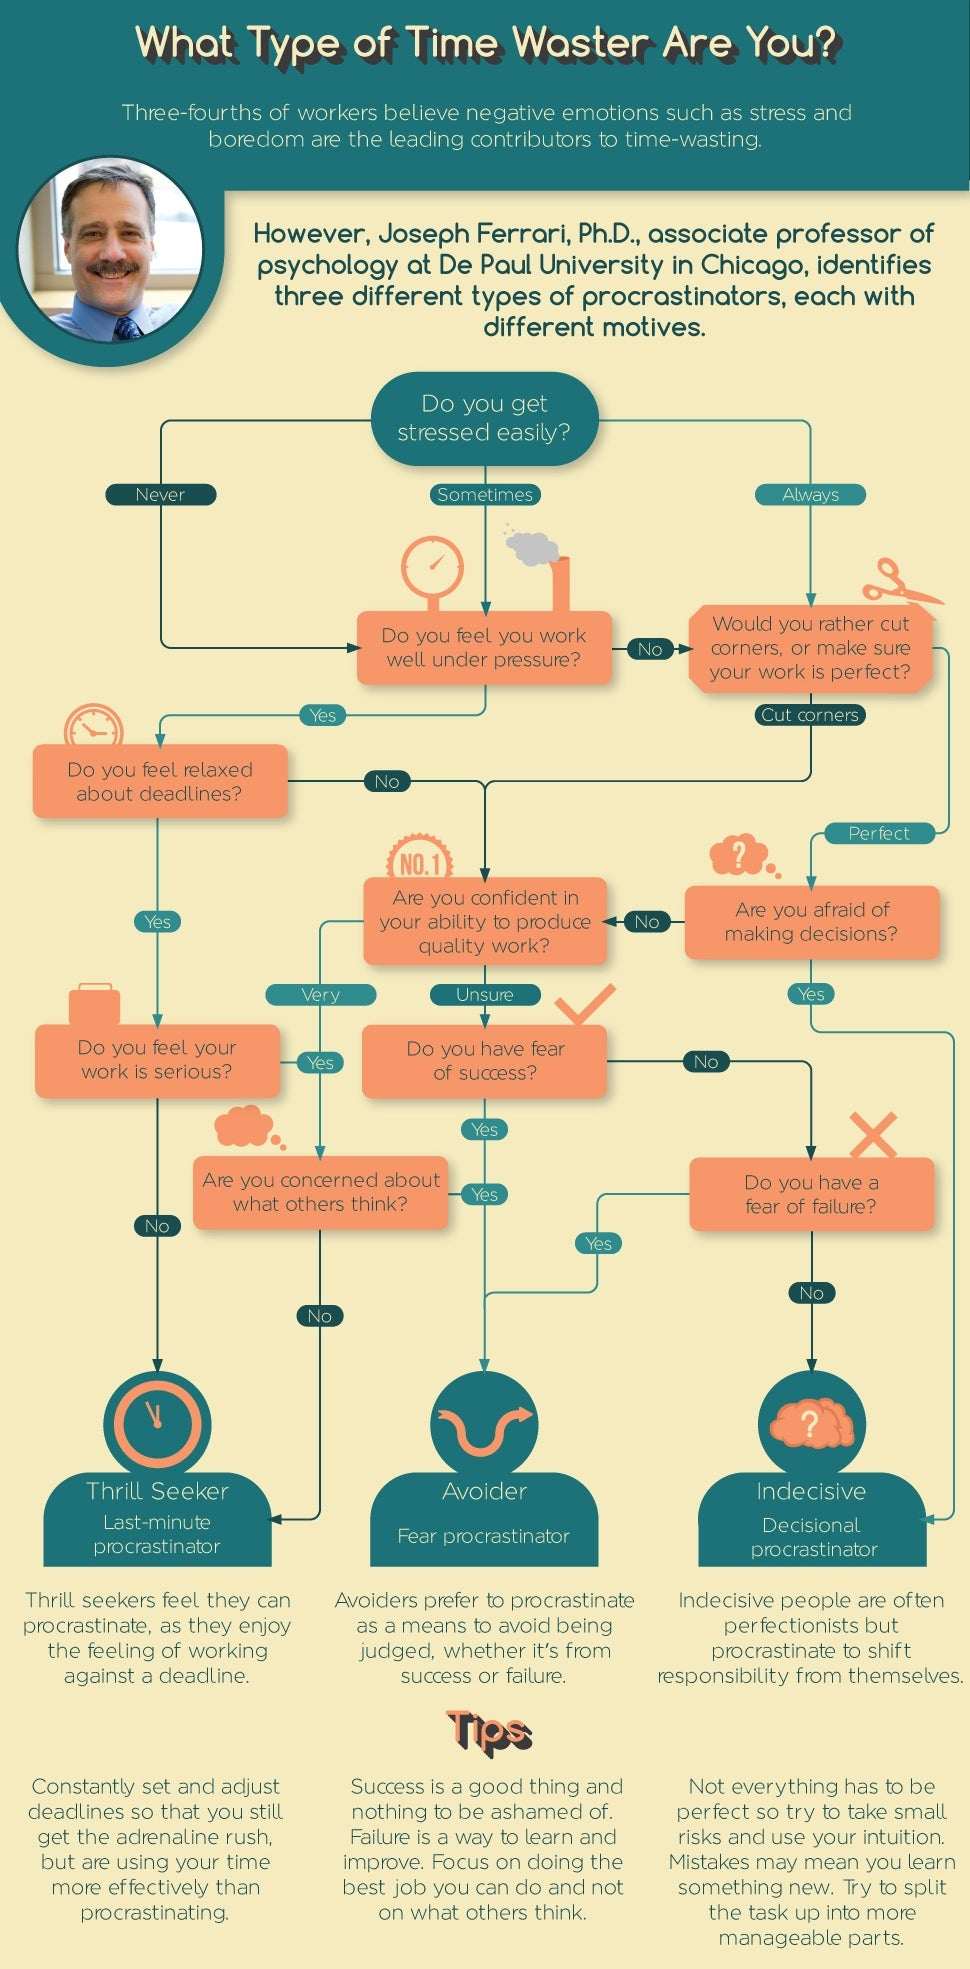 Use This Flowchart To Identify The Type Of Procrastinator You Are